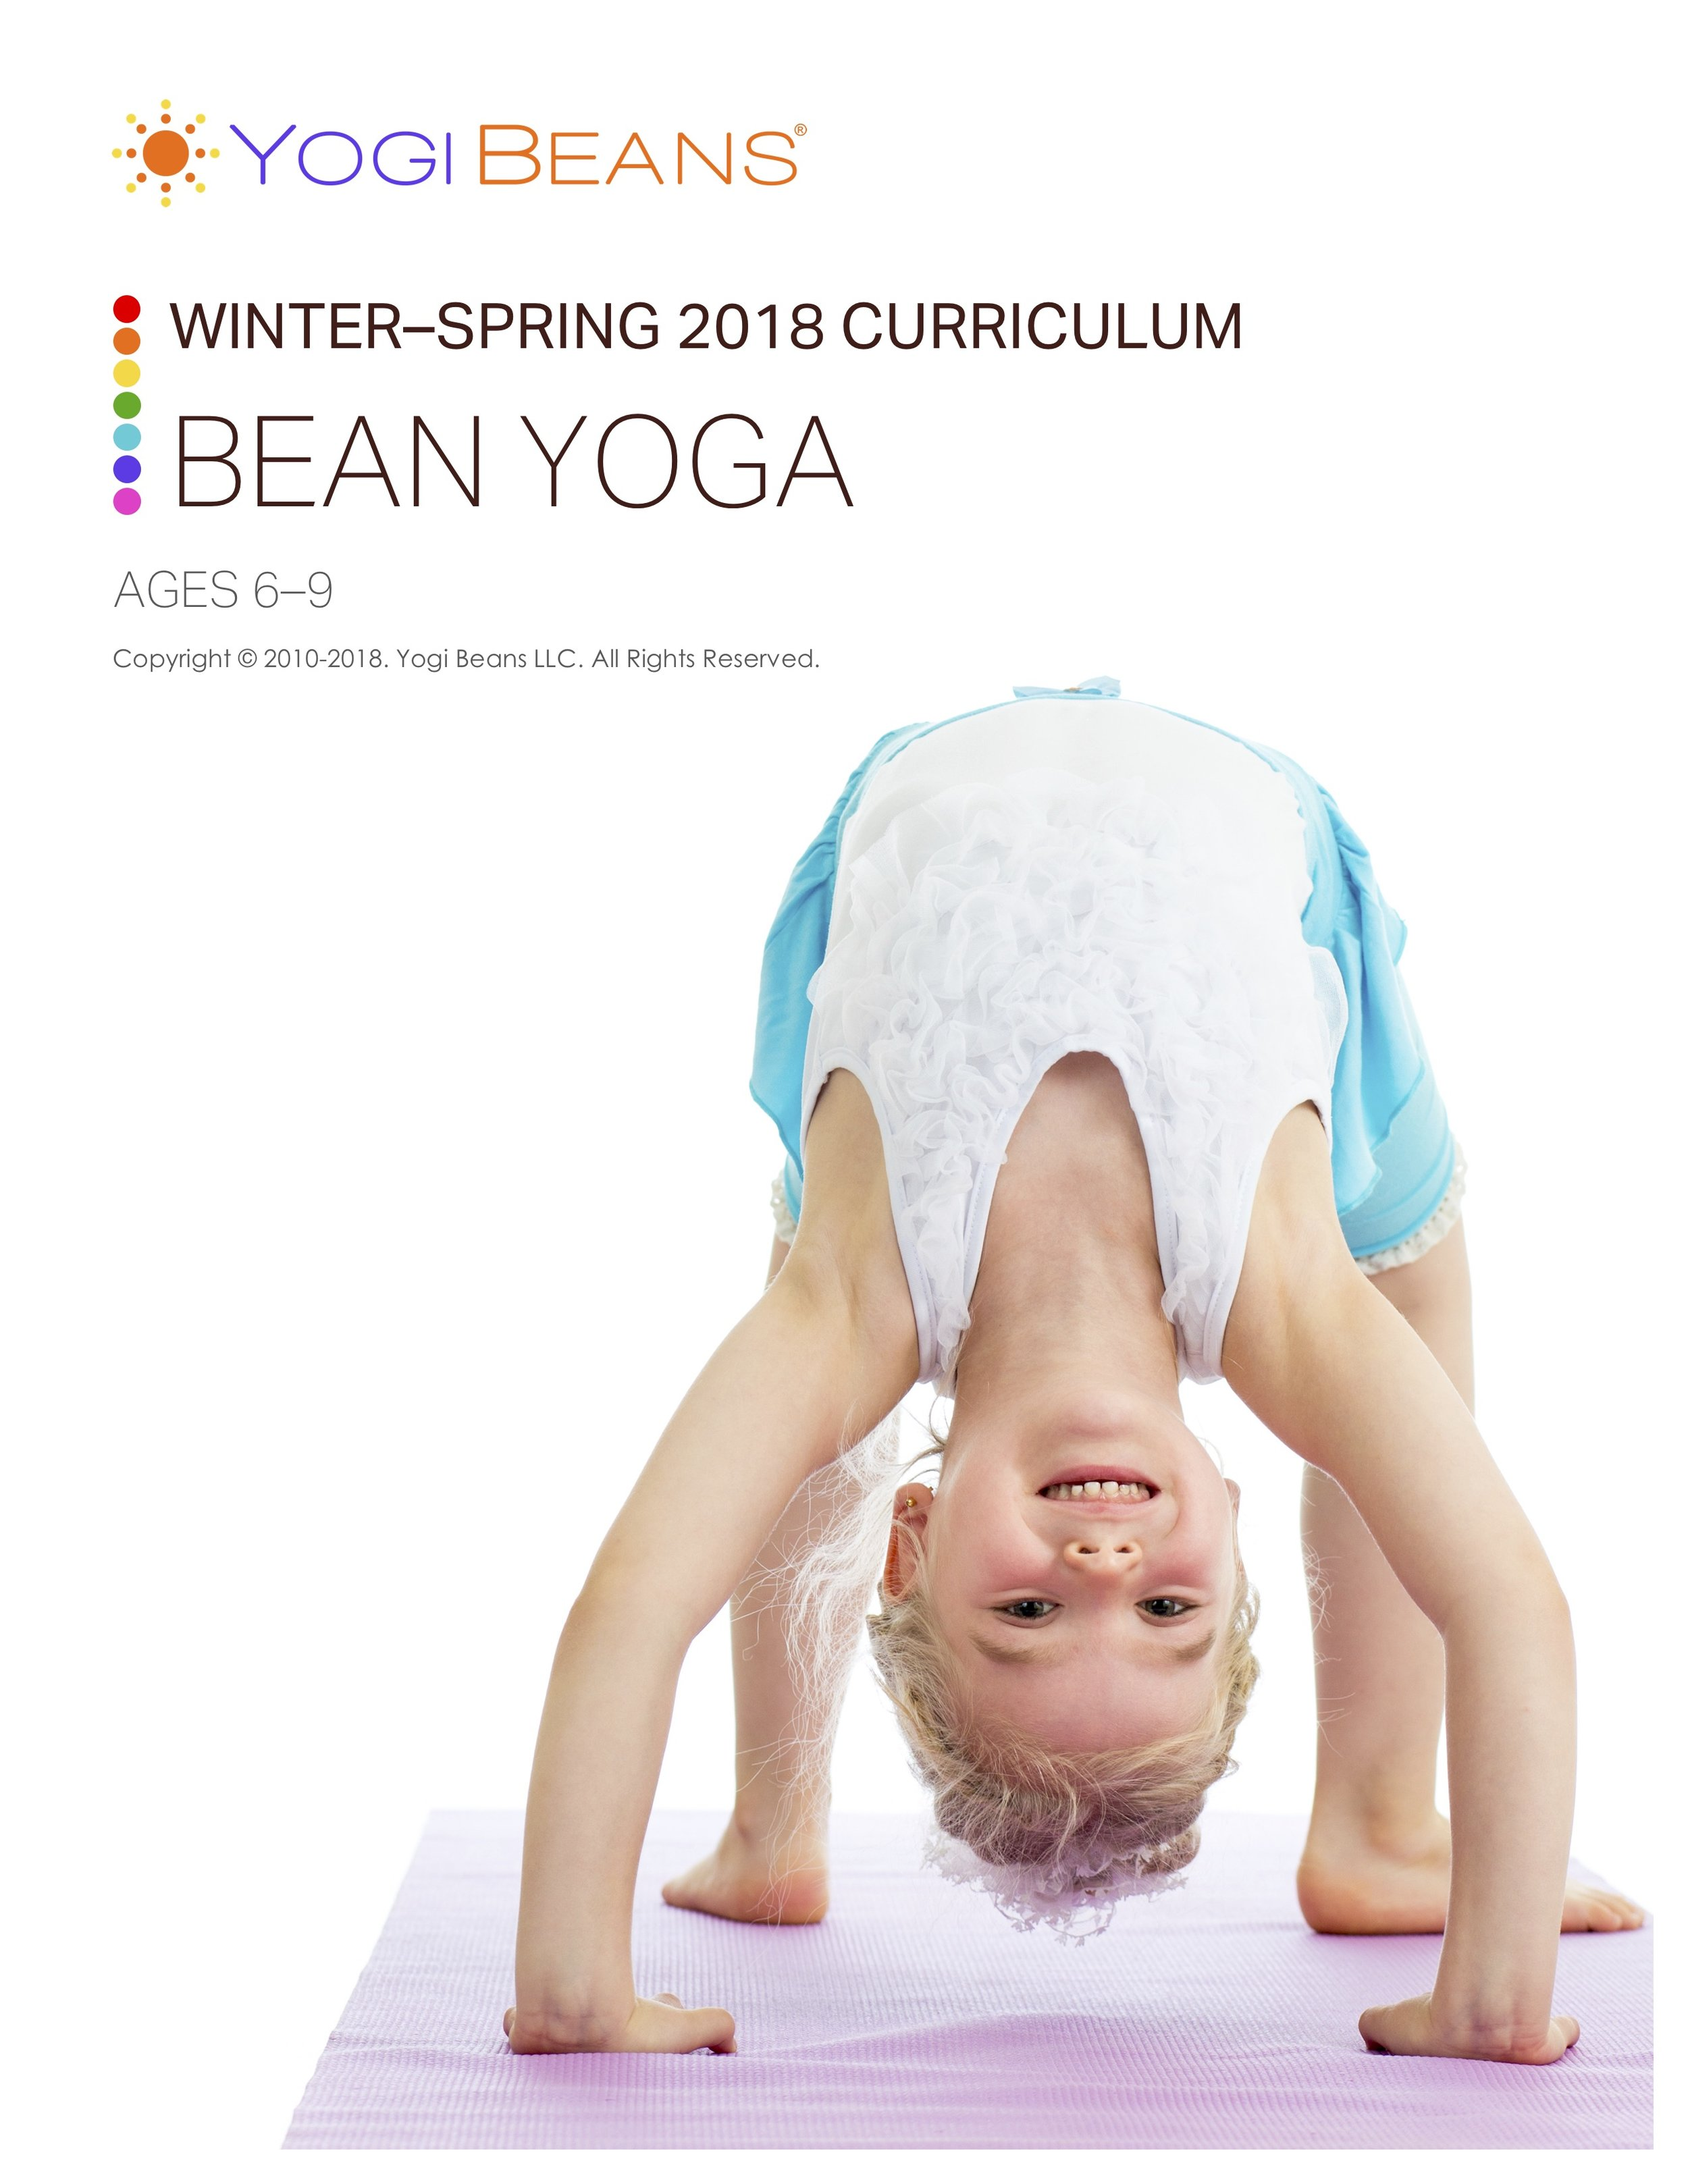 BEAN YOGA (AGES 6-9)